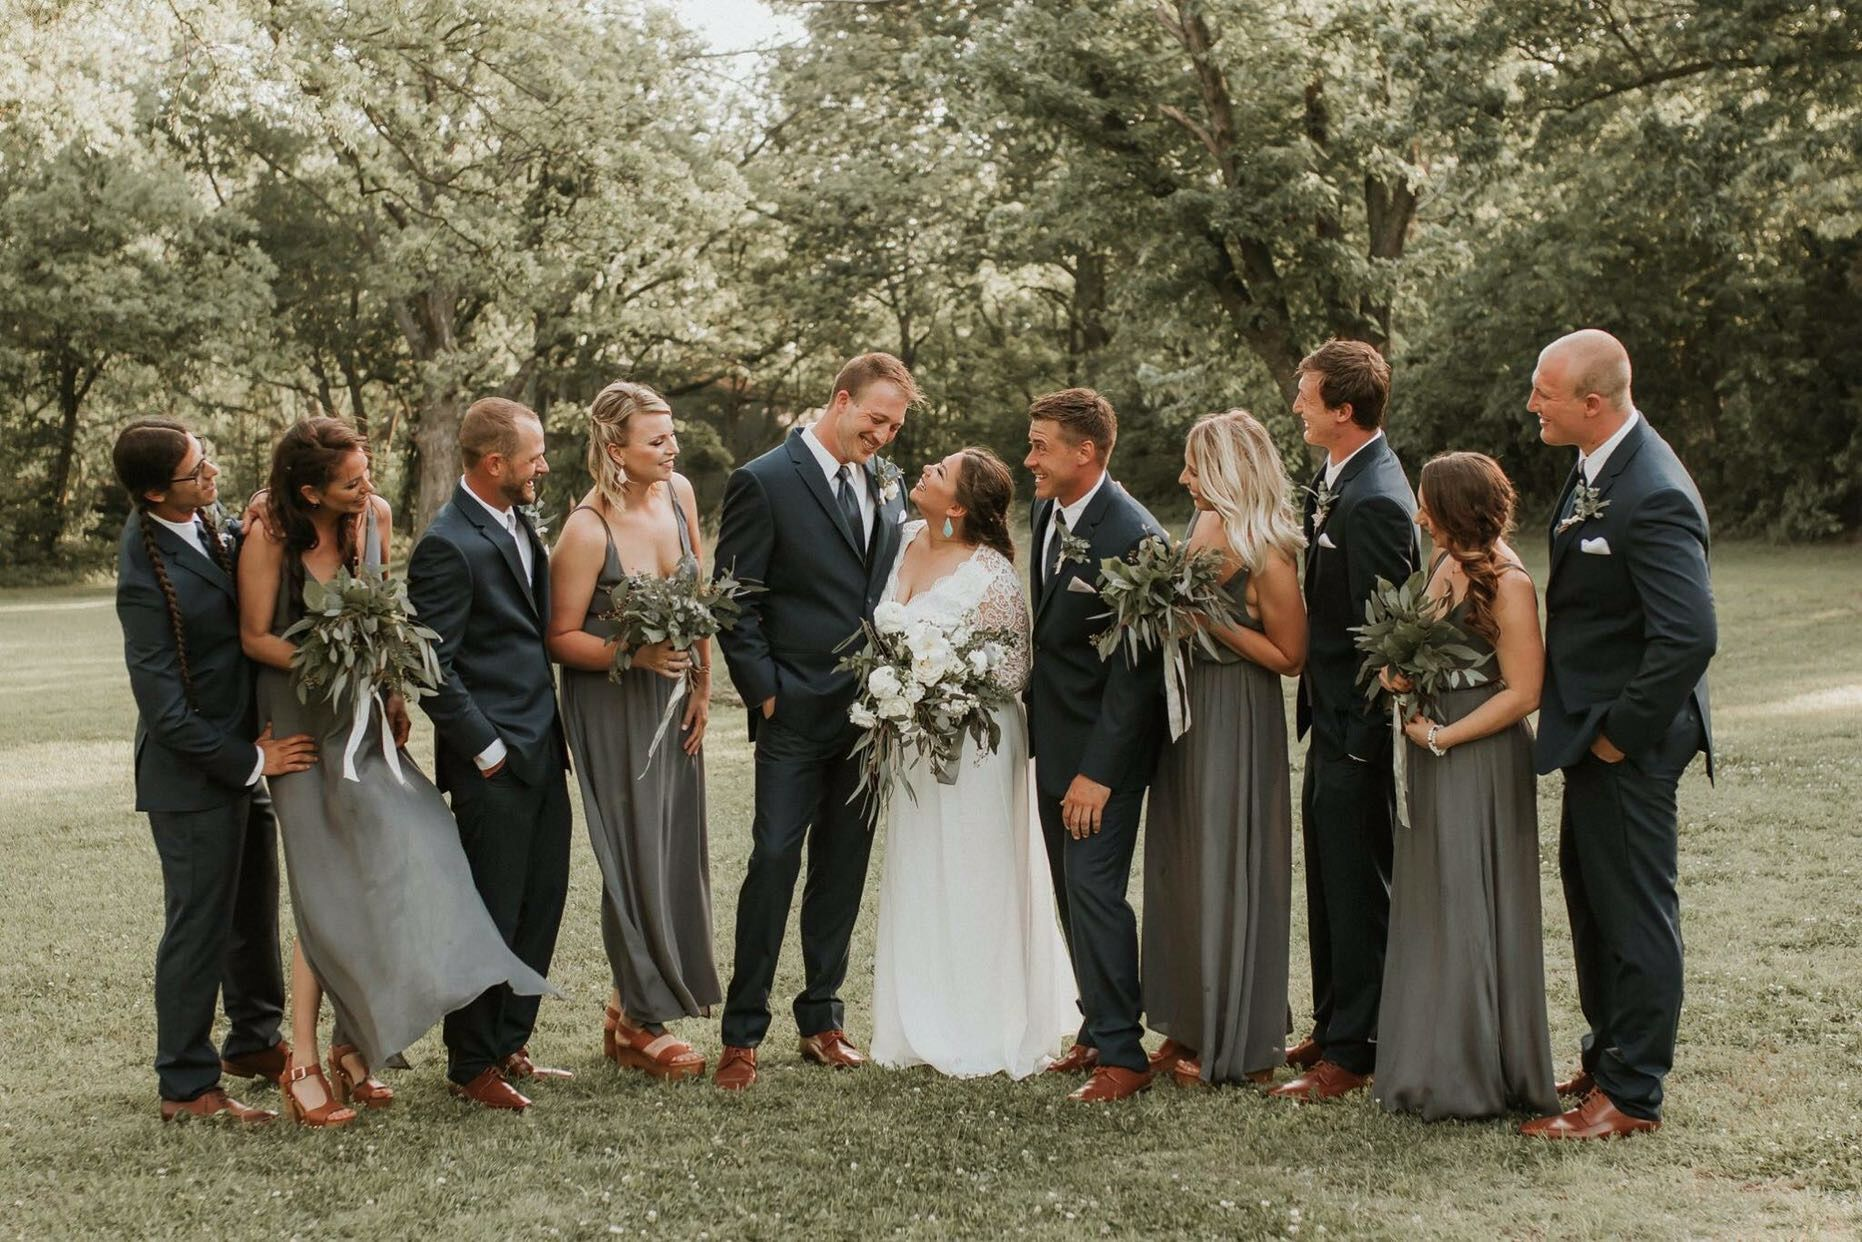 Wedding Party Early May Backyard Wedding Sunset Navy Blue Suits And Slate Gray Dresses Navy Blue Suit Wedding Gray Wedding Party Gray And Navy Blue Wedding